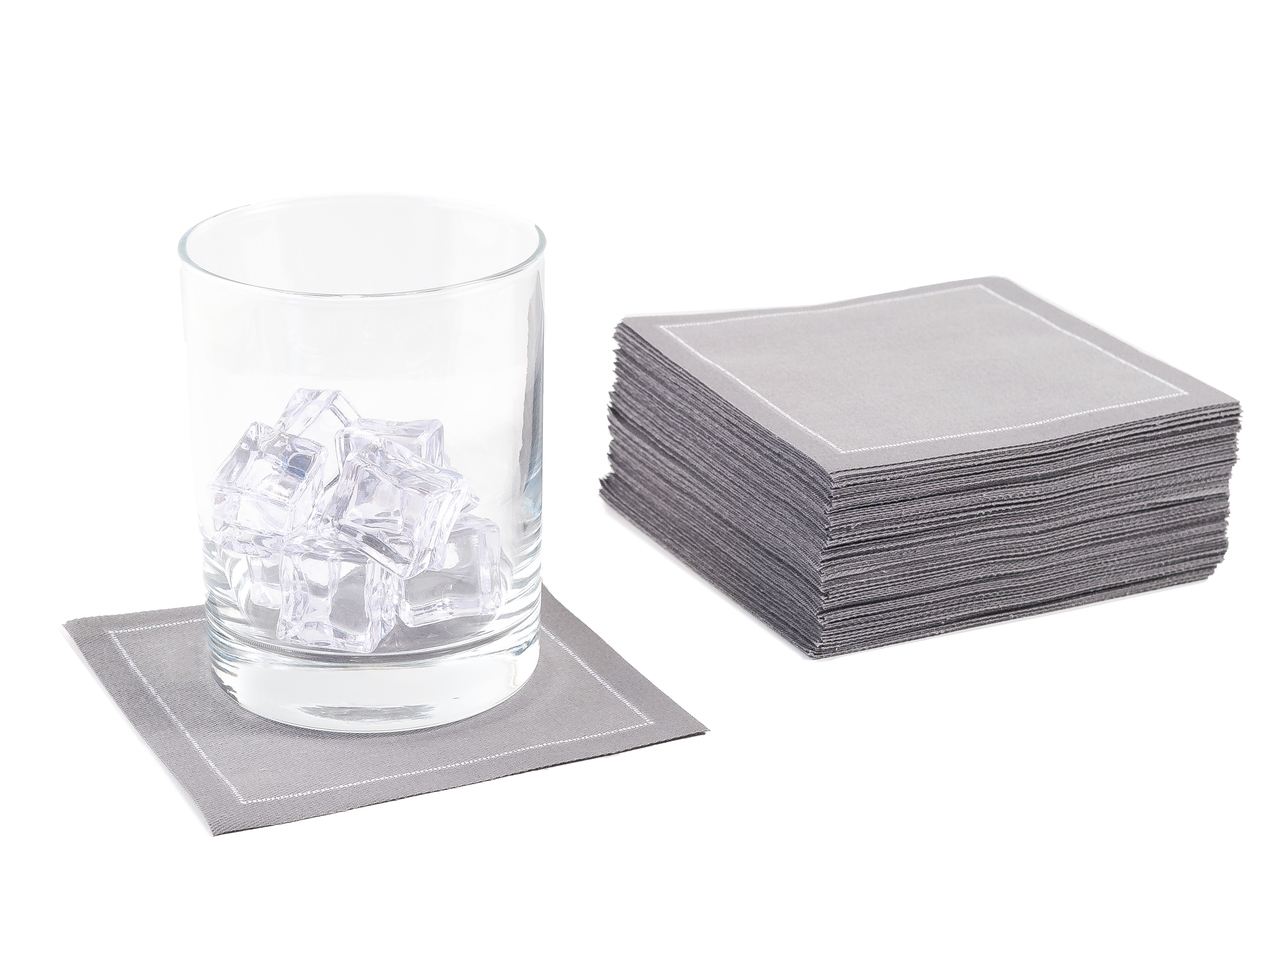 "Grey Cotton Cocktail (200 GSM) - 4.5"" x 4.5"" - 100 units"